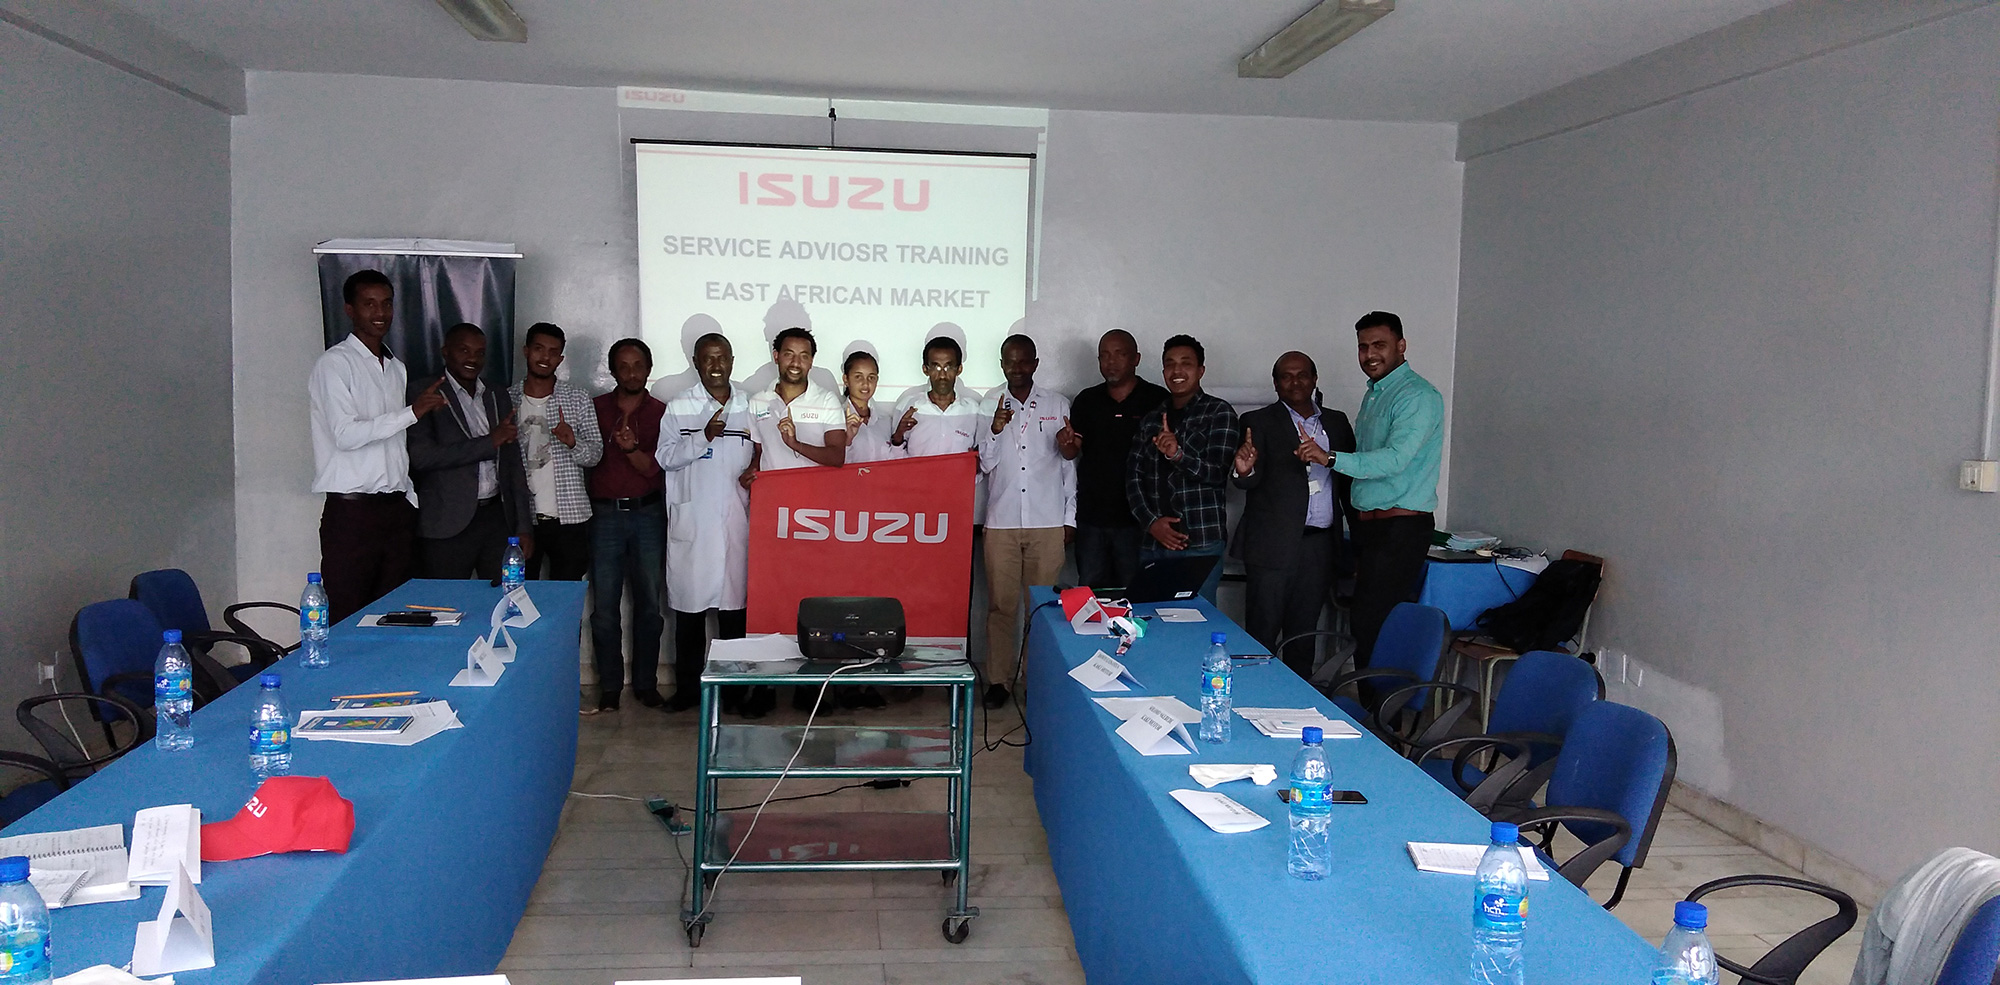 Isuzu Conducted Service Training for East Africa Group Photo